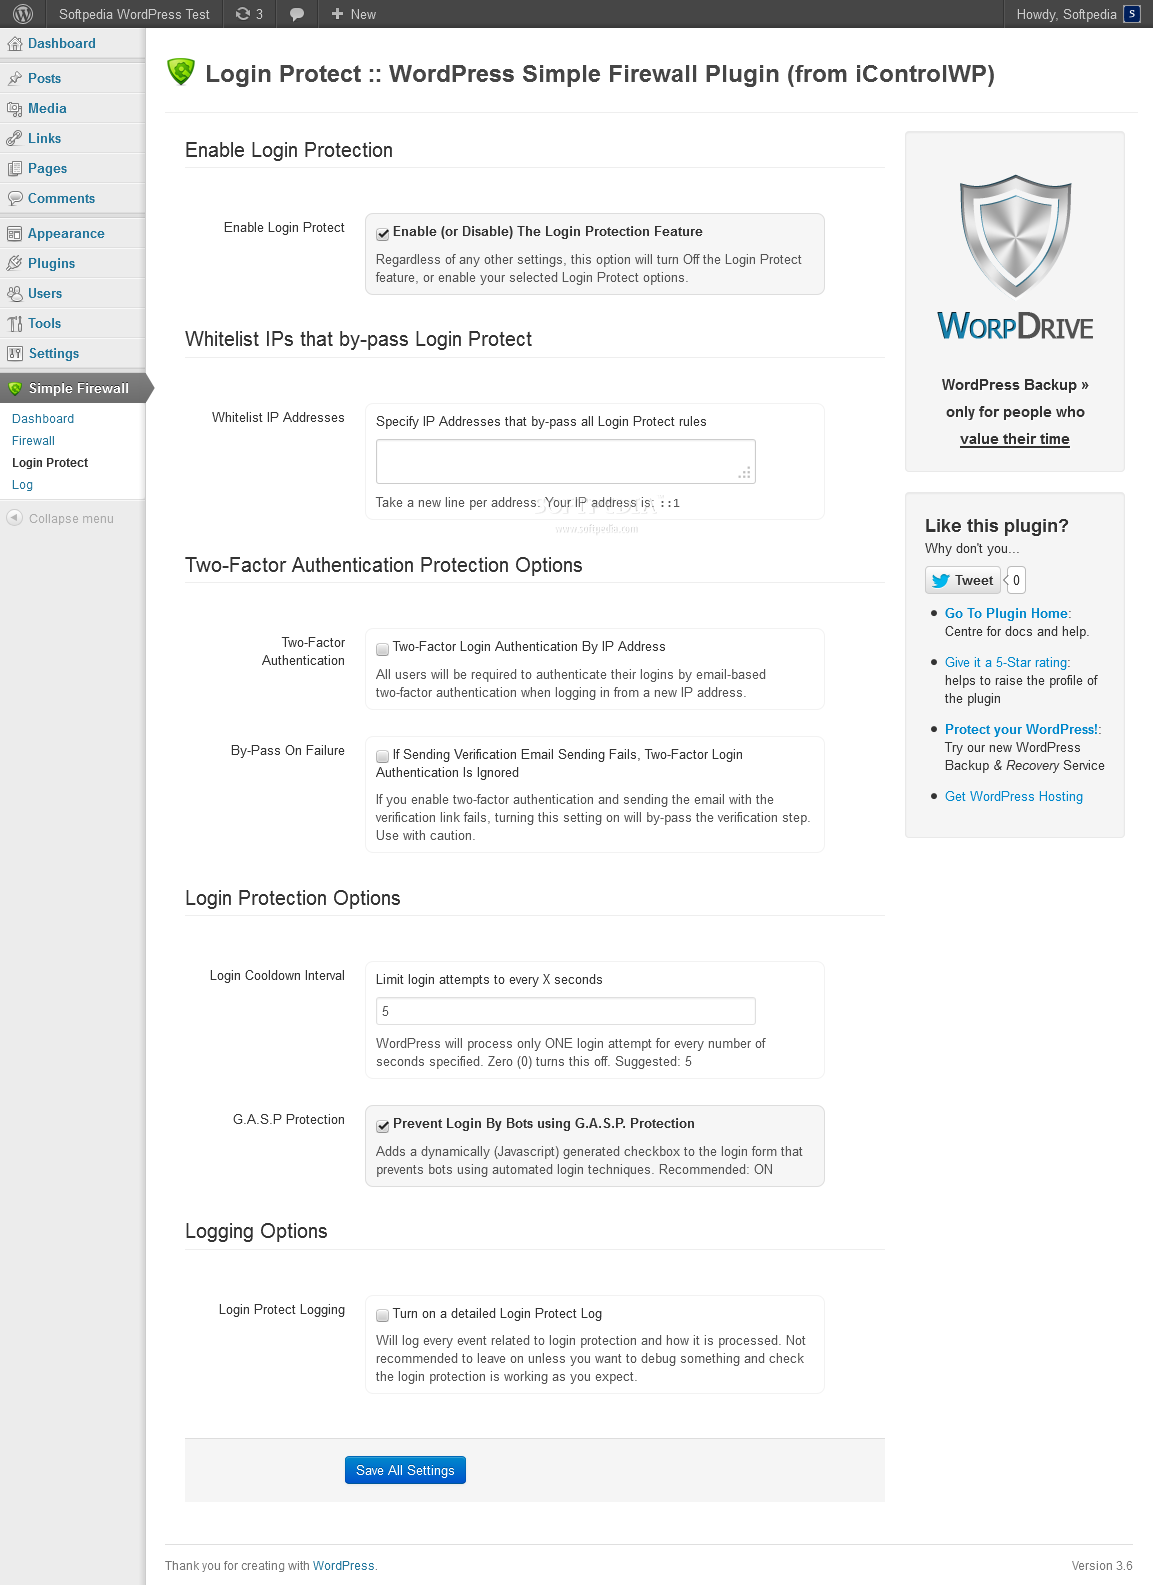 WordPress Simple Security Firewall - WordPress Simple Firewall also allows admins to improve login page security